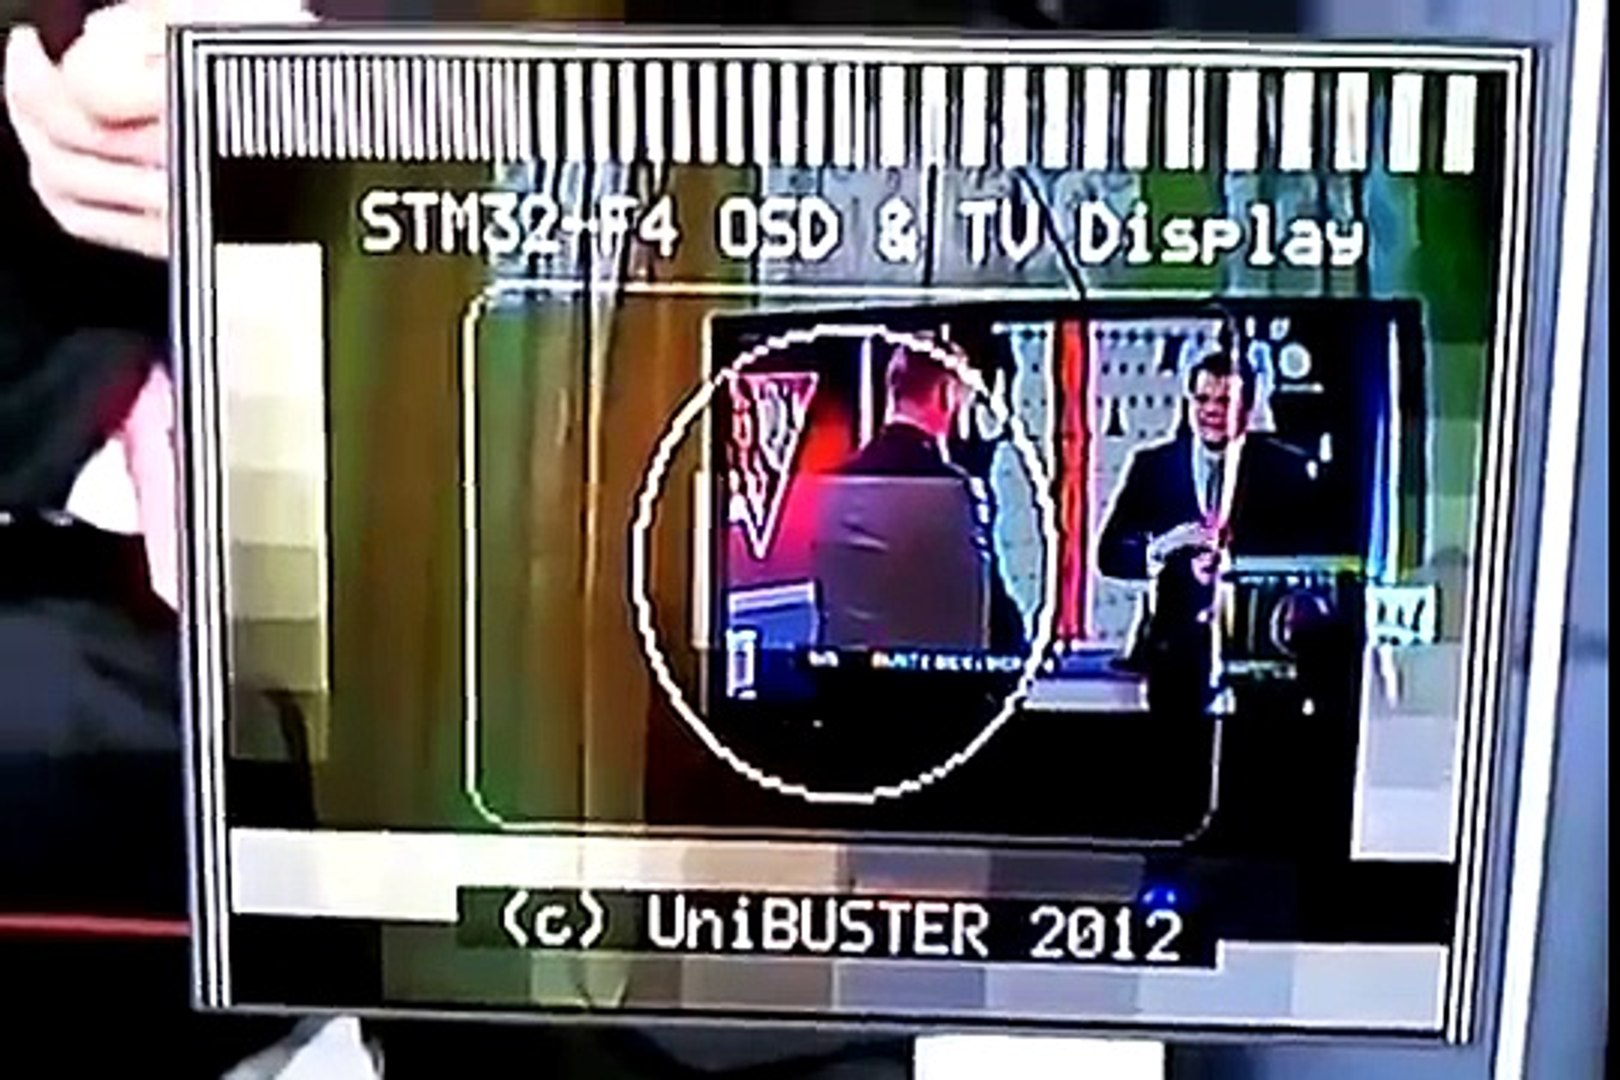 OSD & TV DISPLAY on STM32 F4 Discovery + Free RTOS